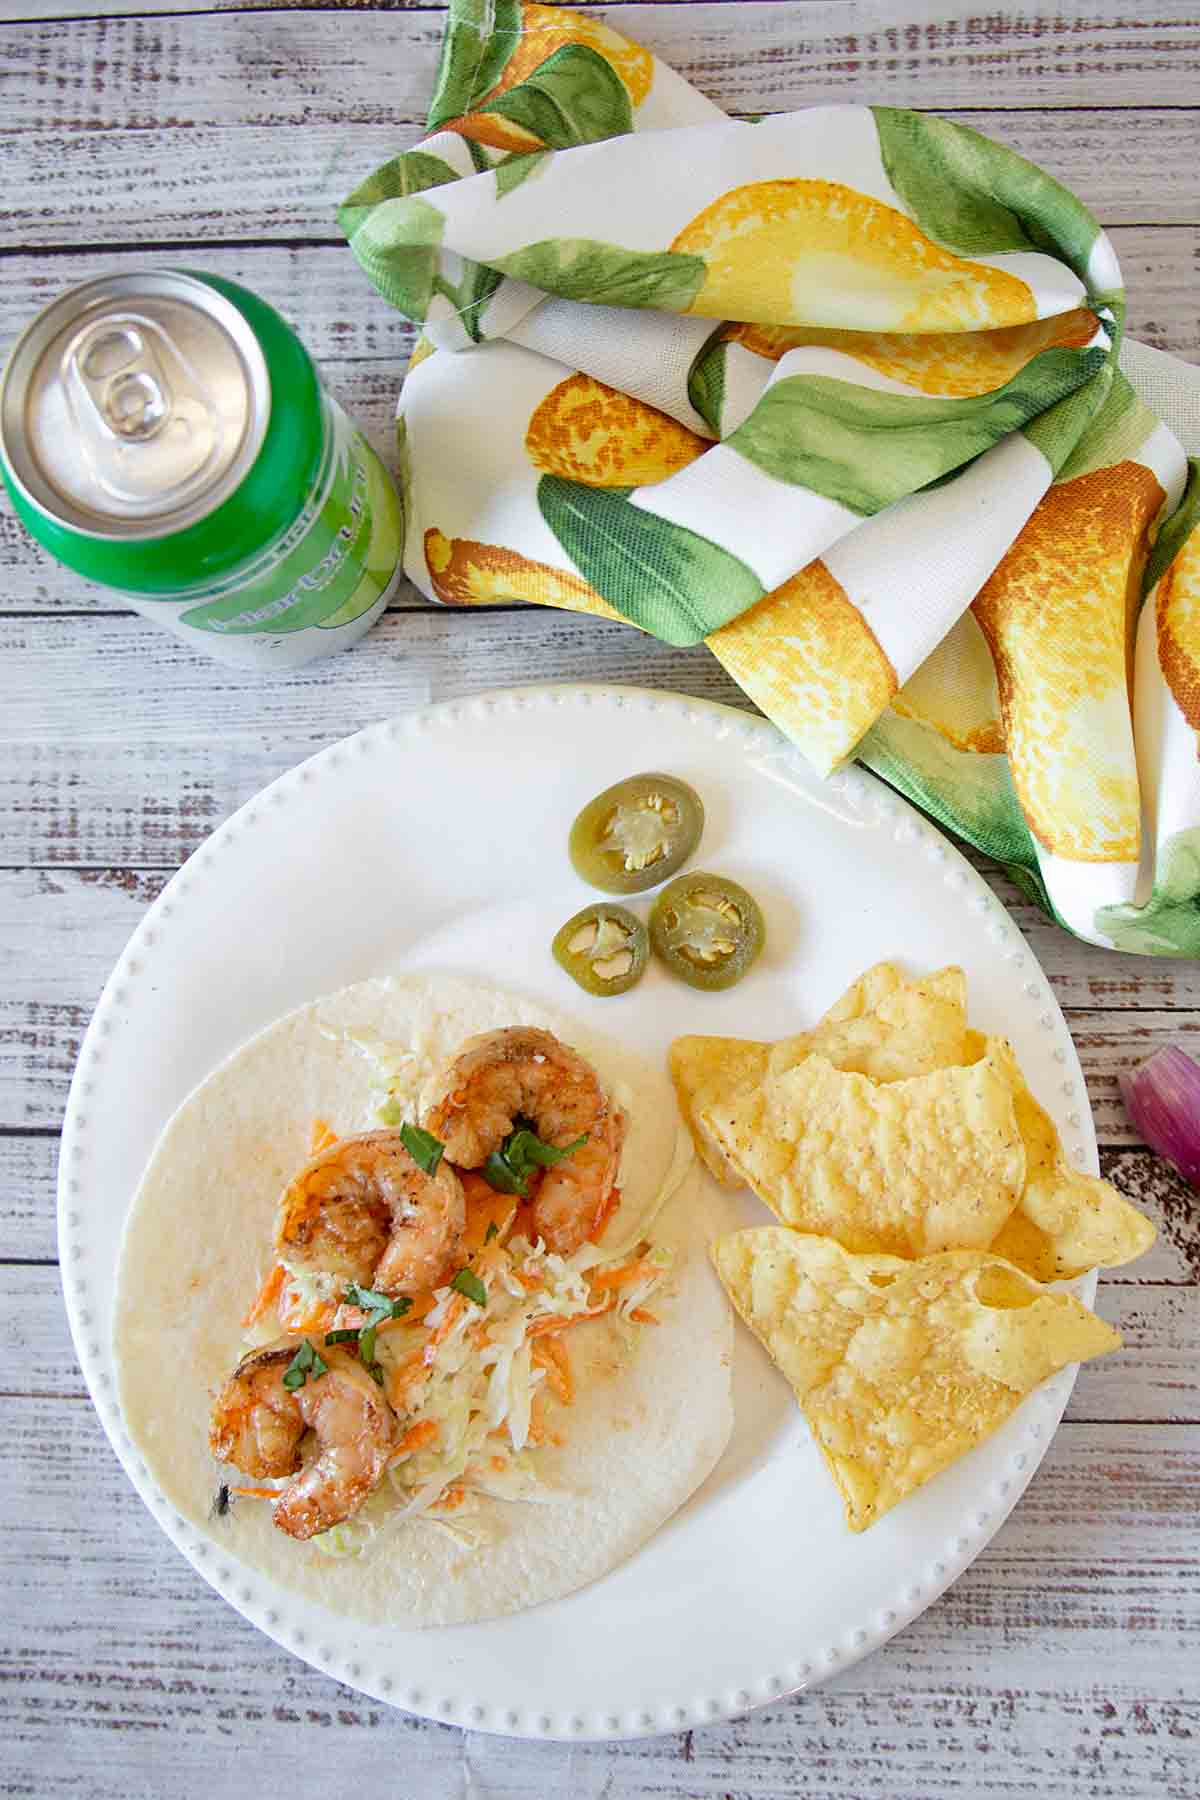 Seasoned shrimp, paired with fresh coleslaw and your favorite toppings, makes Grilled Shrimp Tacos a fun and tasty lunch or dinner.